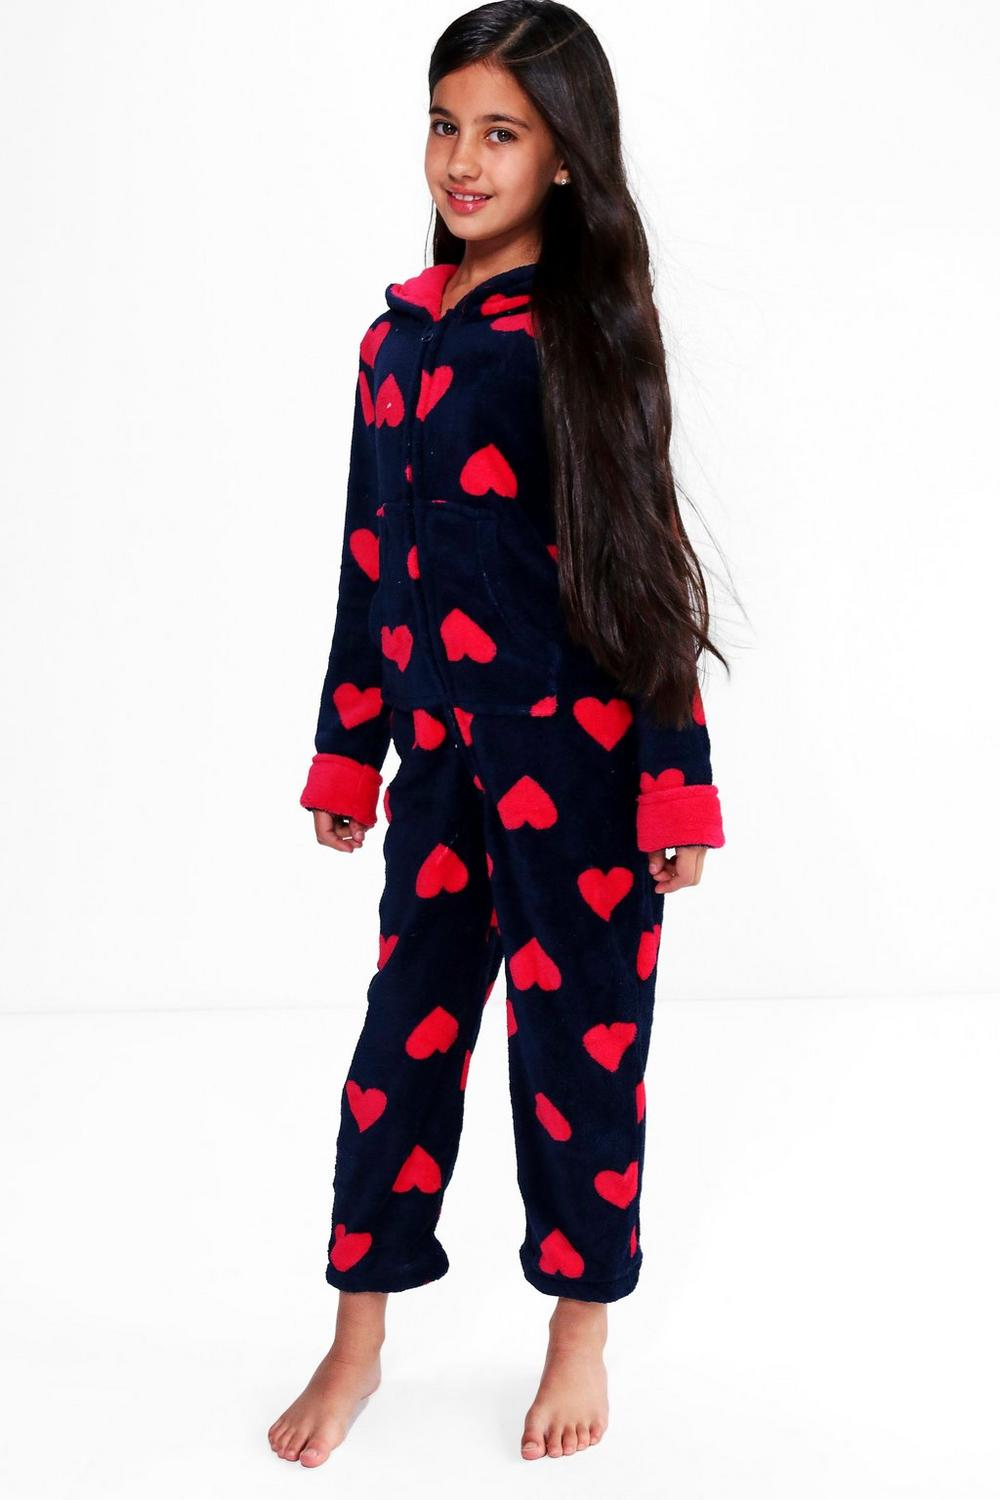 Girls Heart Print Fleece Onesie